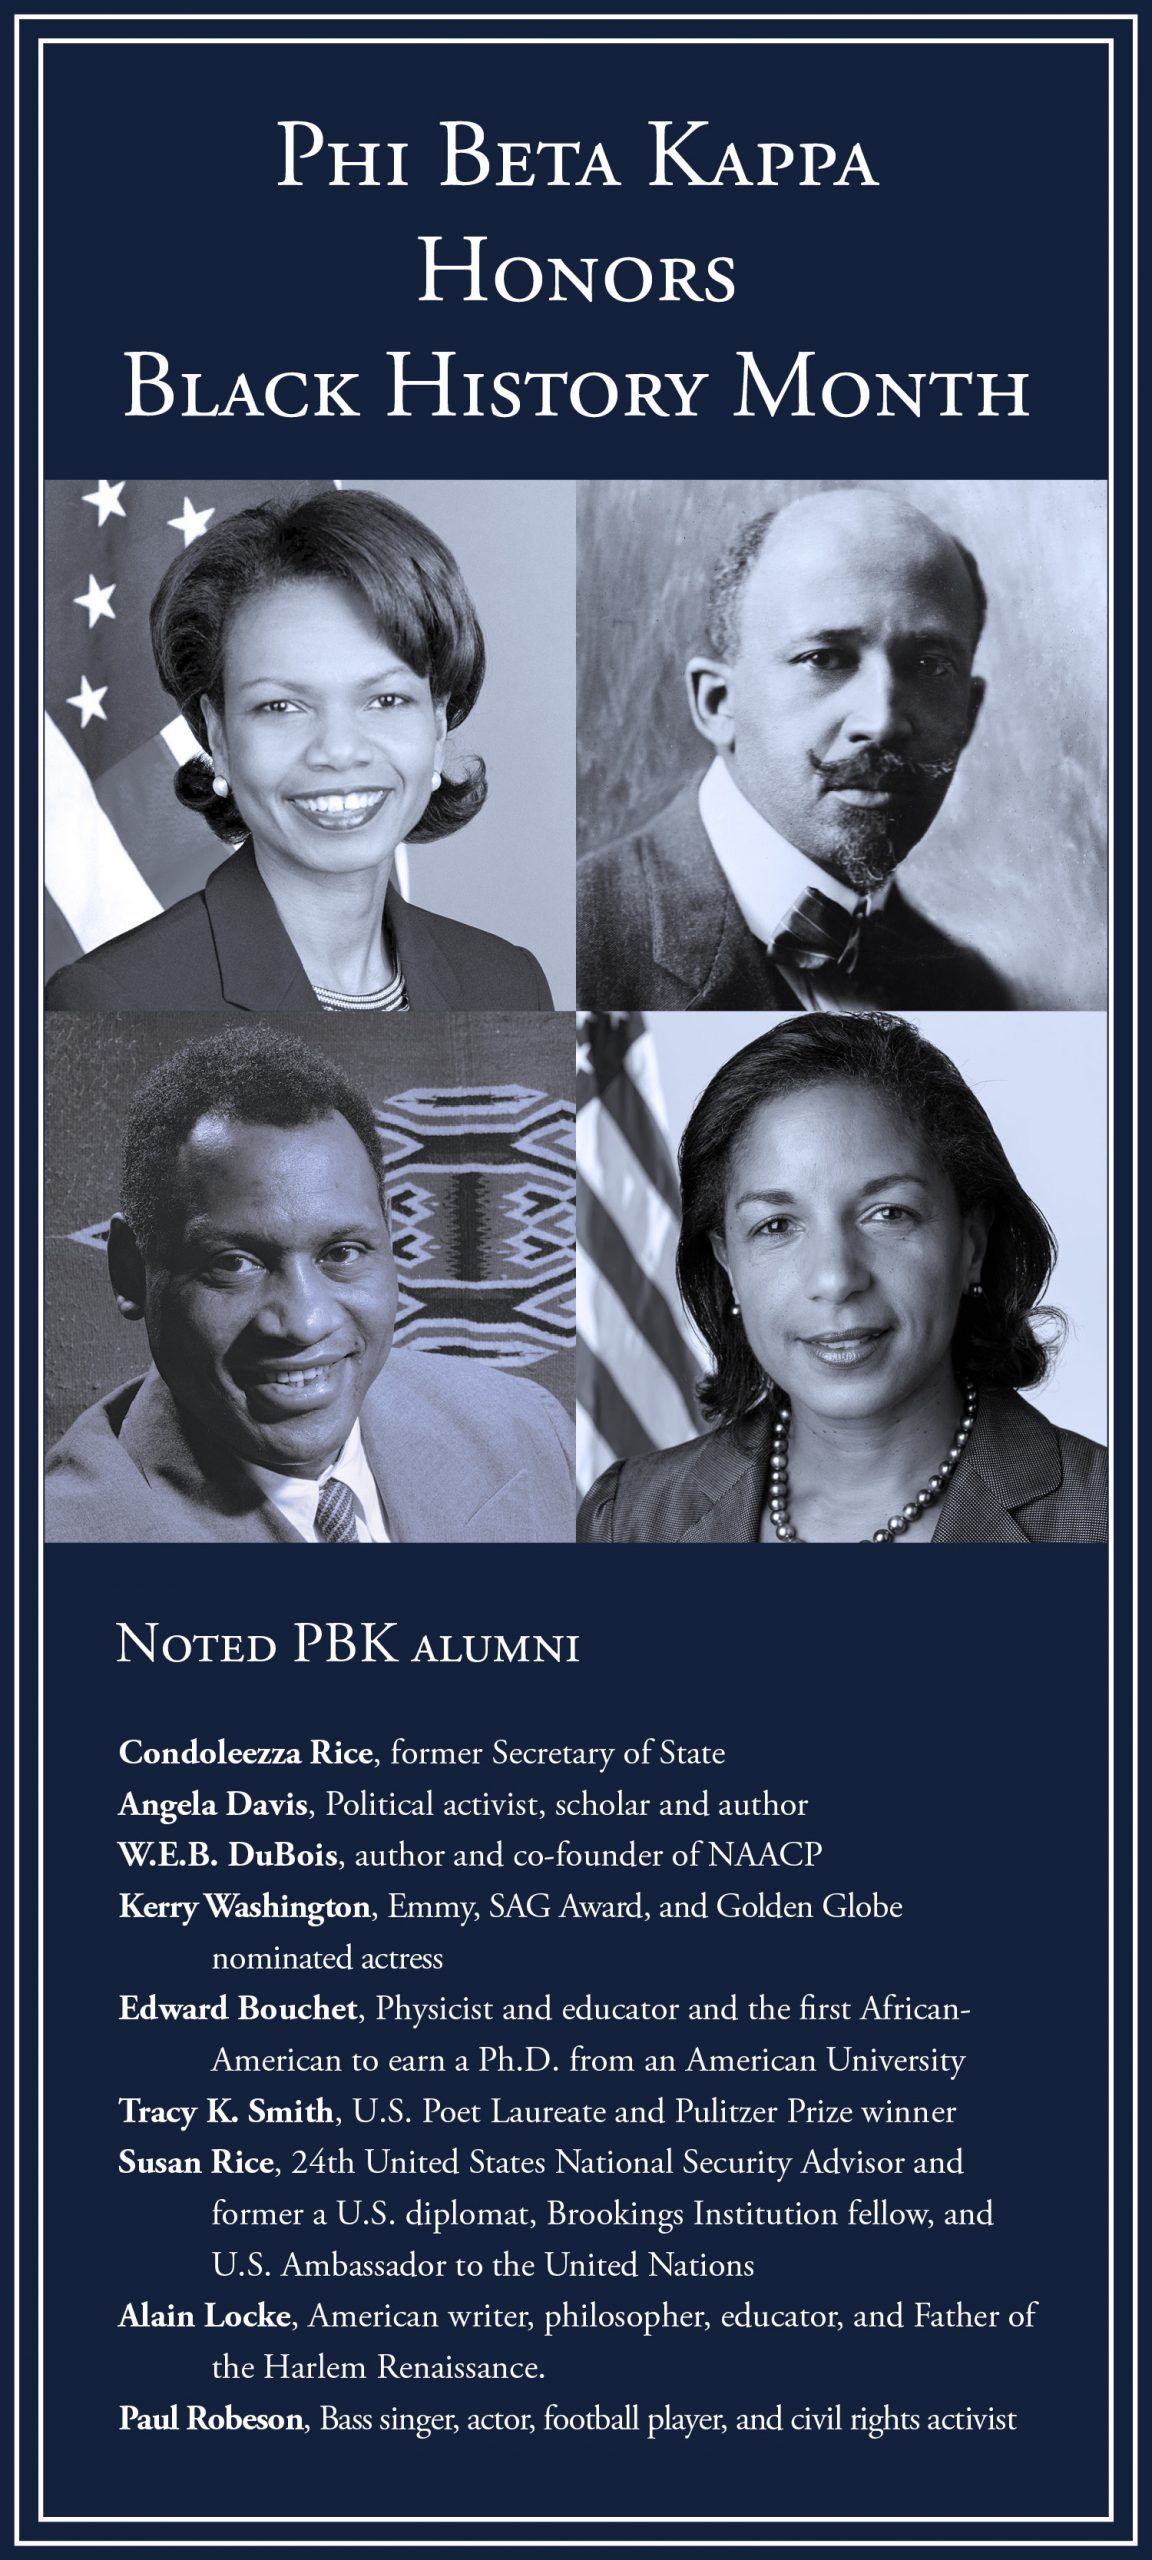 Phi Beta Kappa honors Black History Month